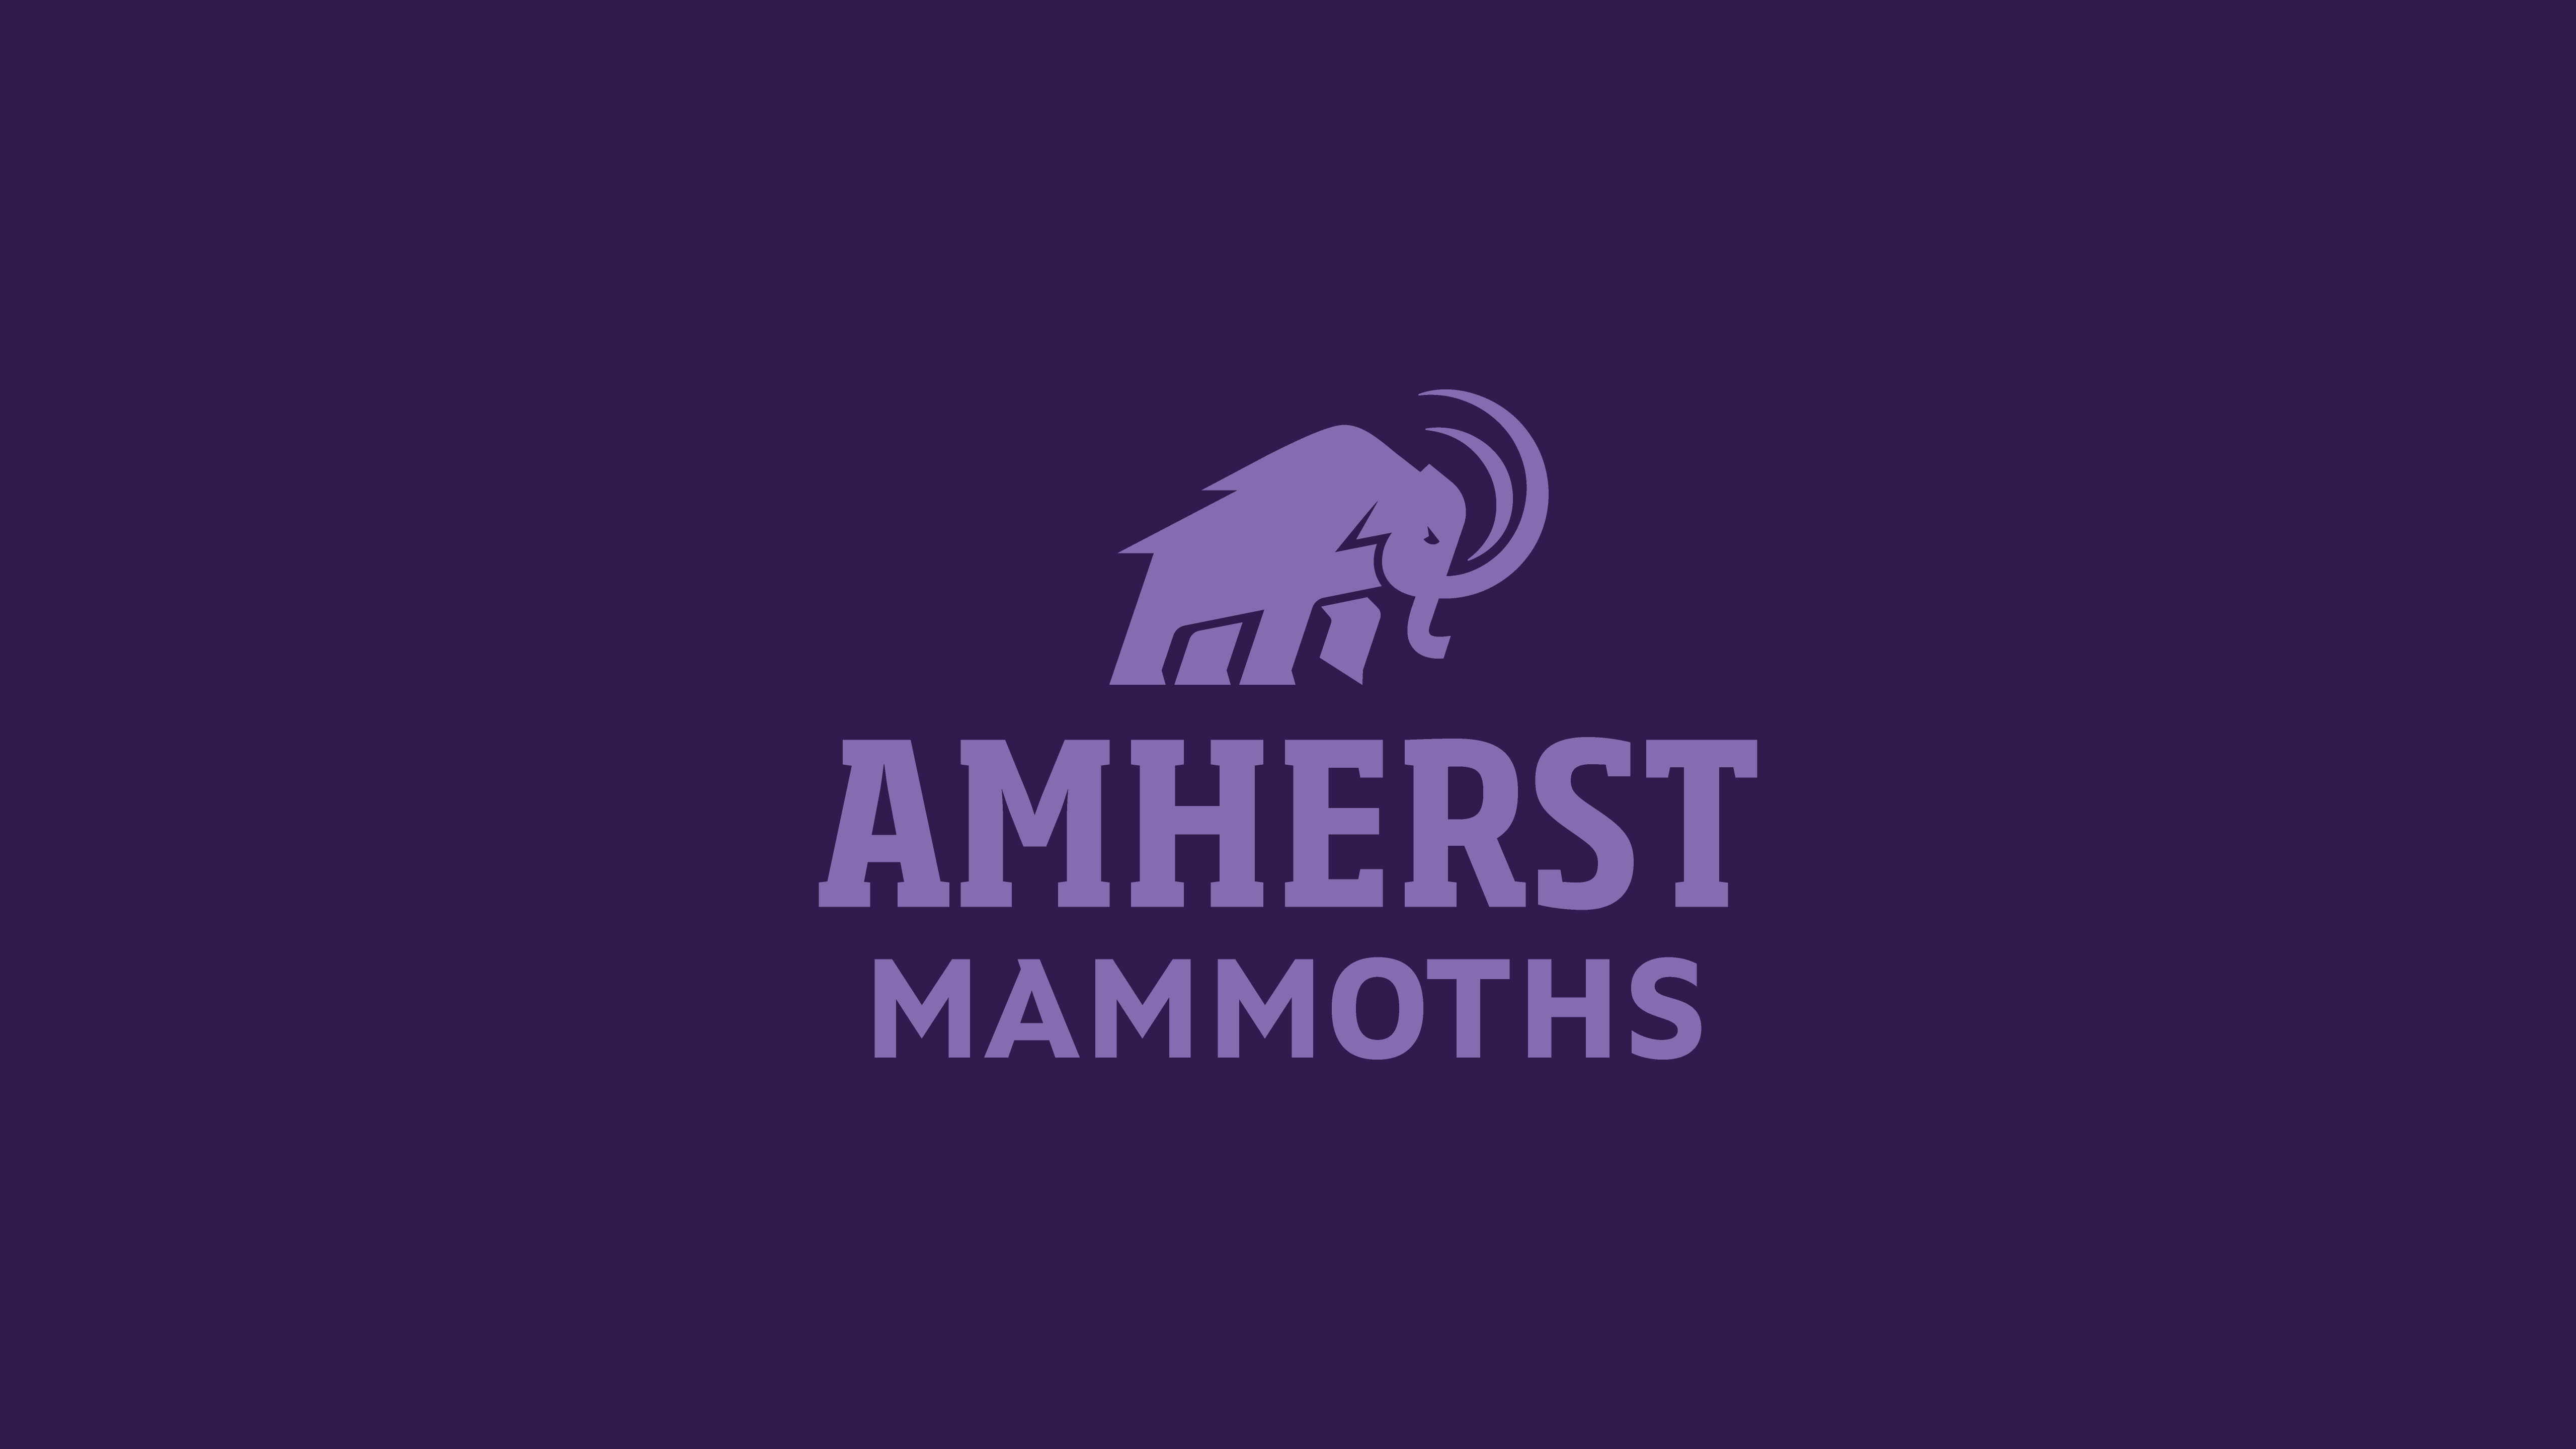 Light purple mammoth logo and Amherst Mammoths wording on dark purple background